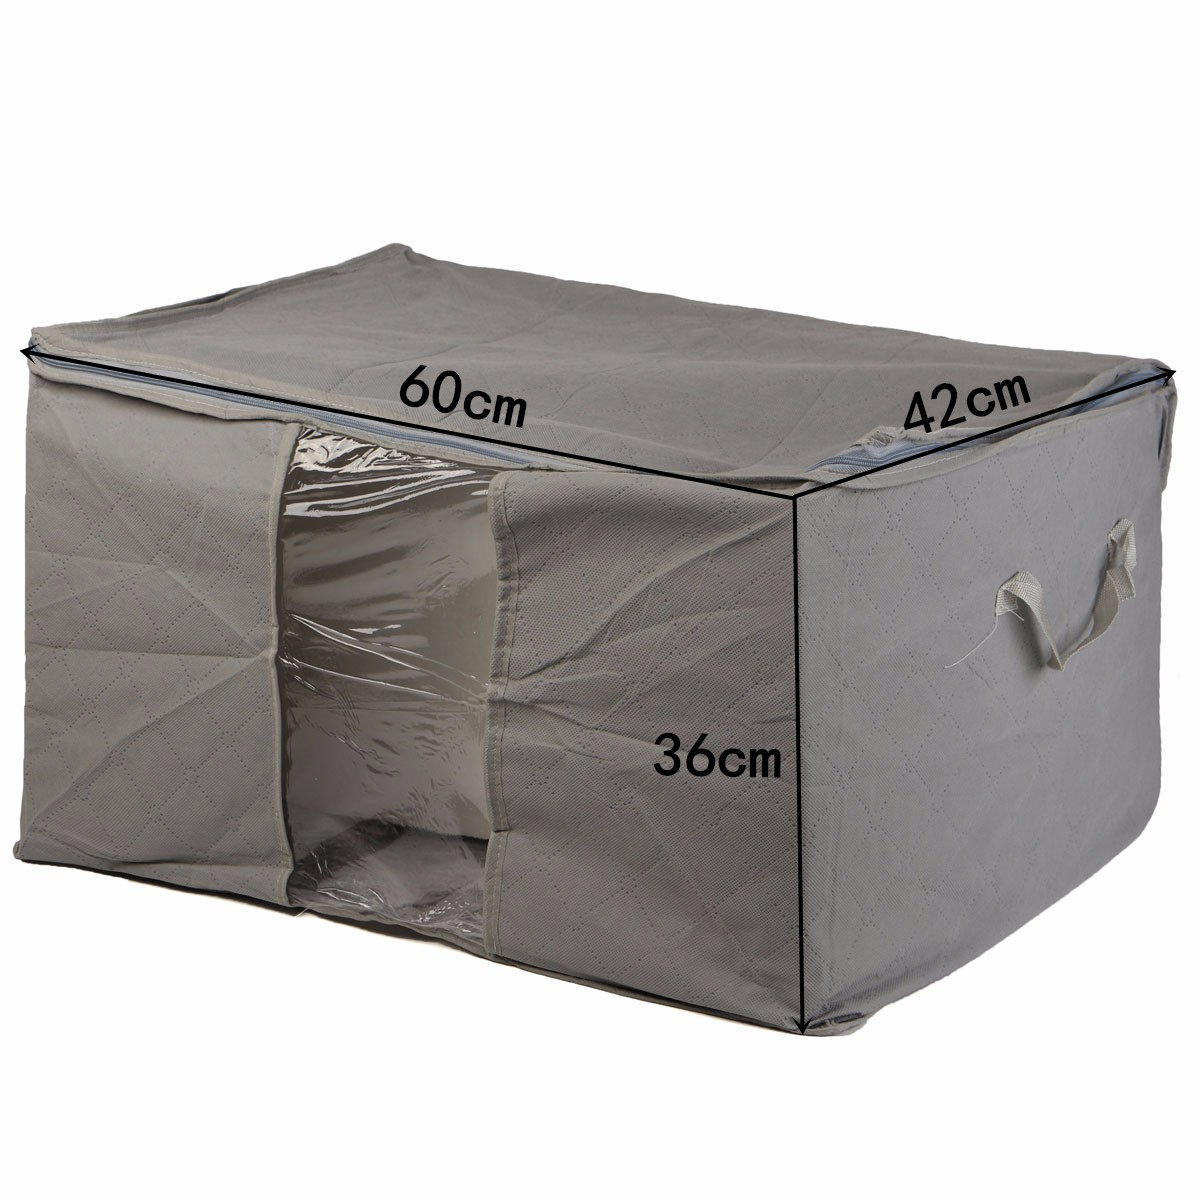 Foldable Large Bedding Storage Bag Organiser for Pillow Clothes Quilt Bedding Duvet Blanket Under Bed Storage Organizer Box